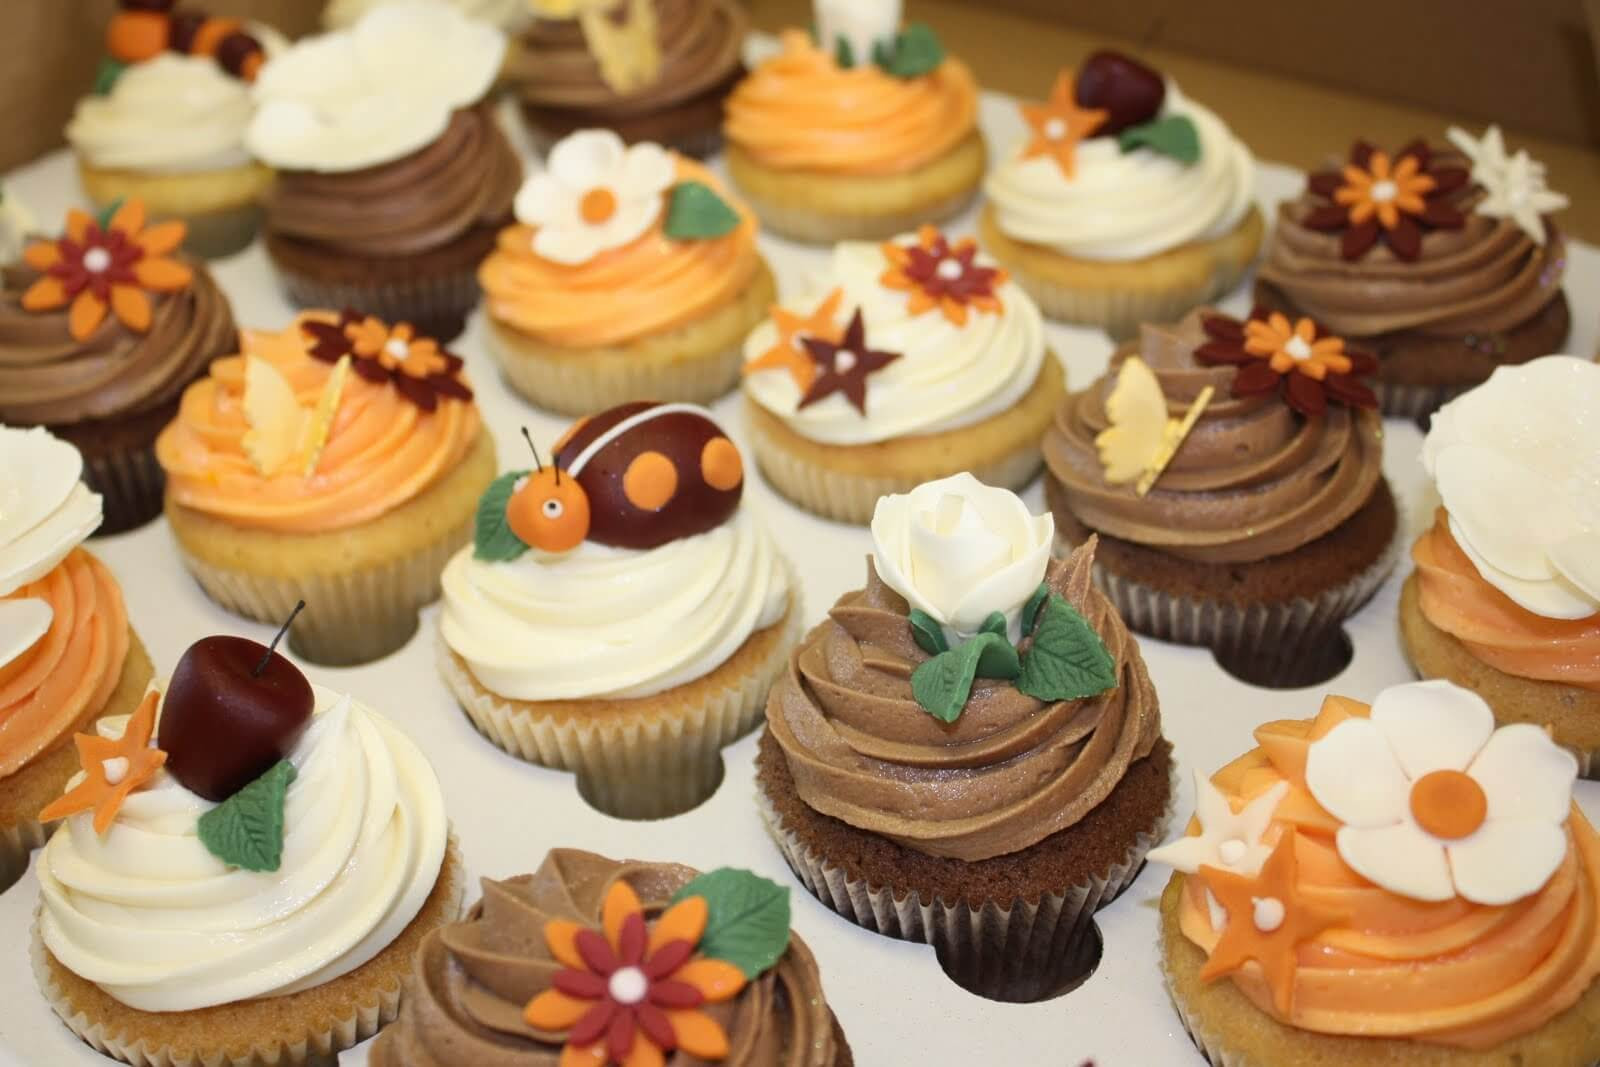 25 Fabulous Autumn Fall Cupcakes  29 Fall Themed Cupcakes for This Season